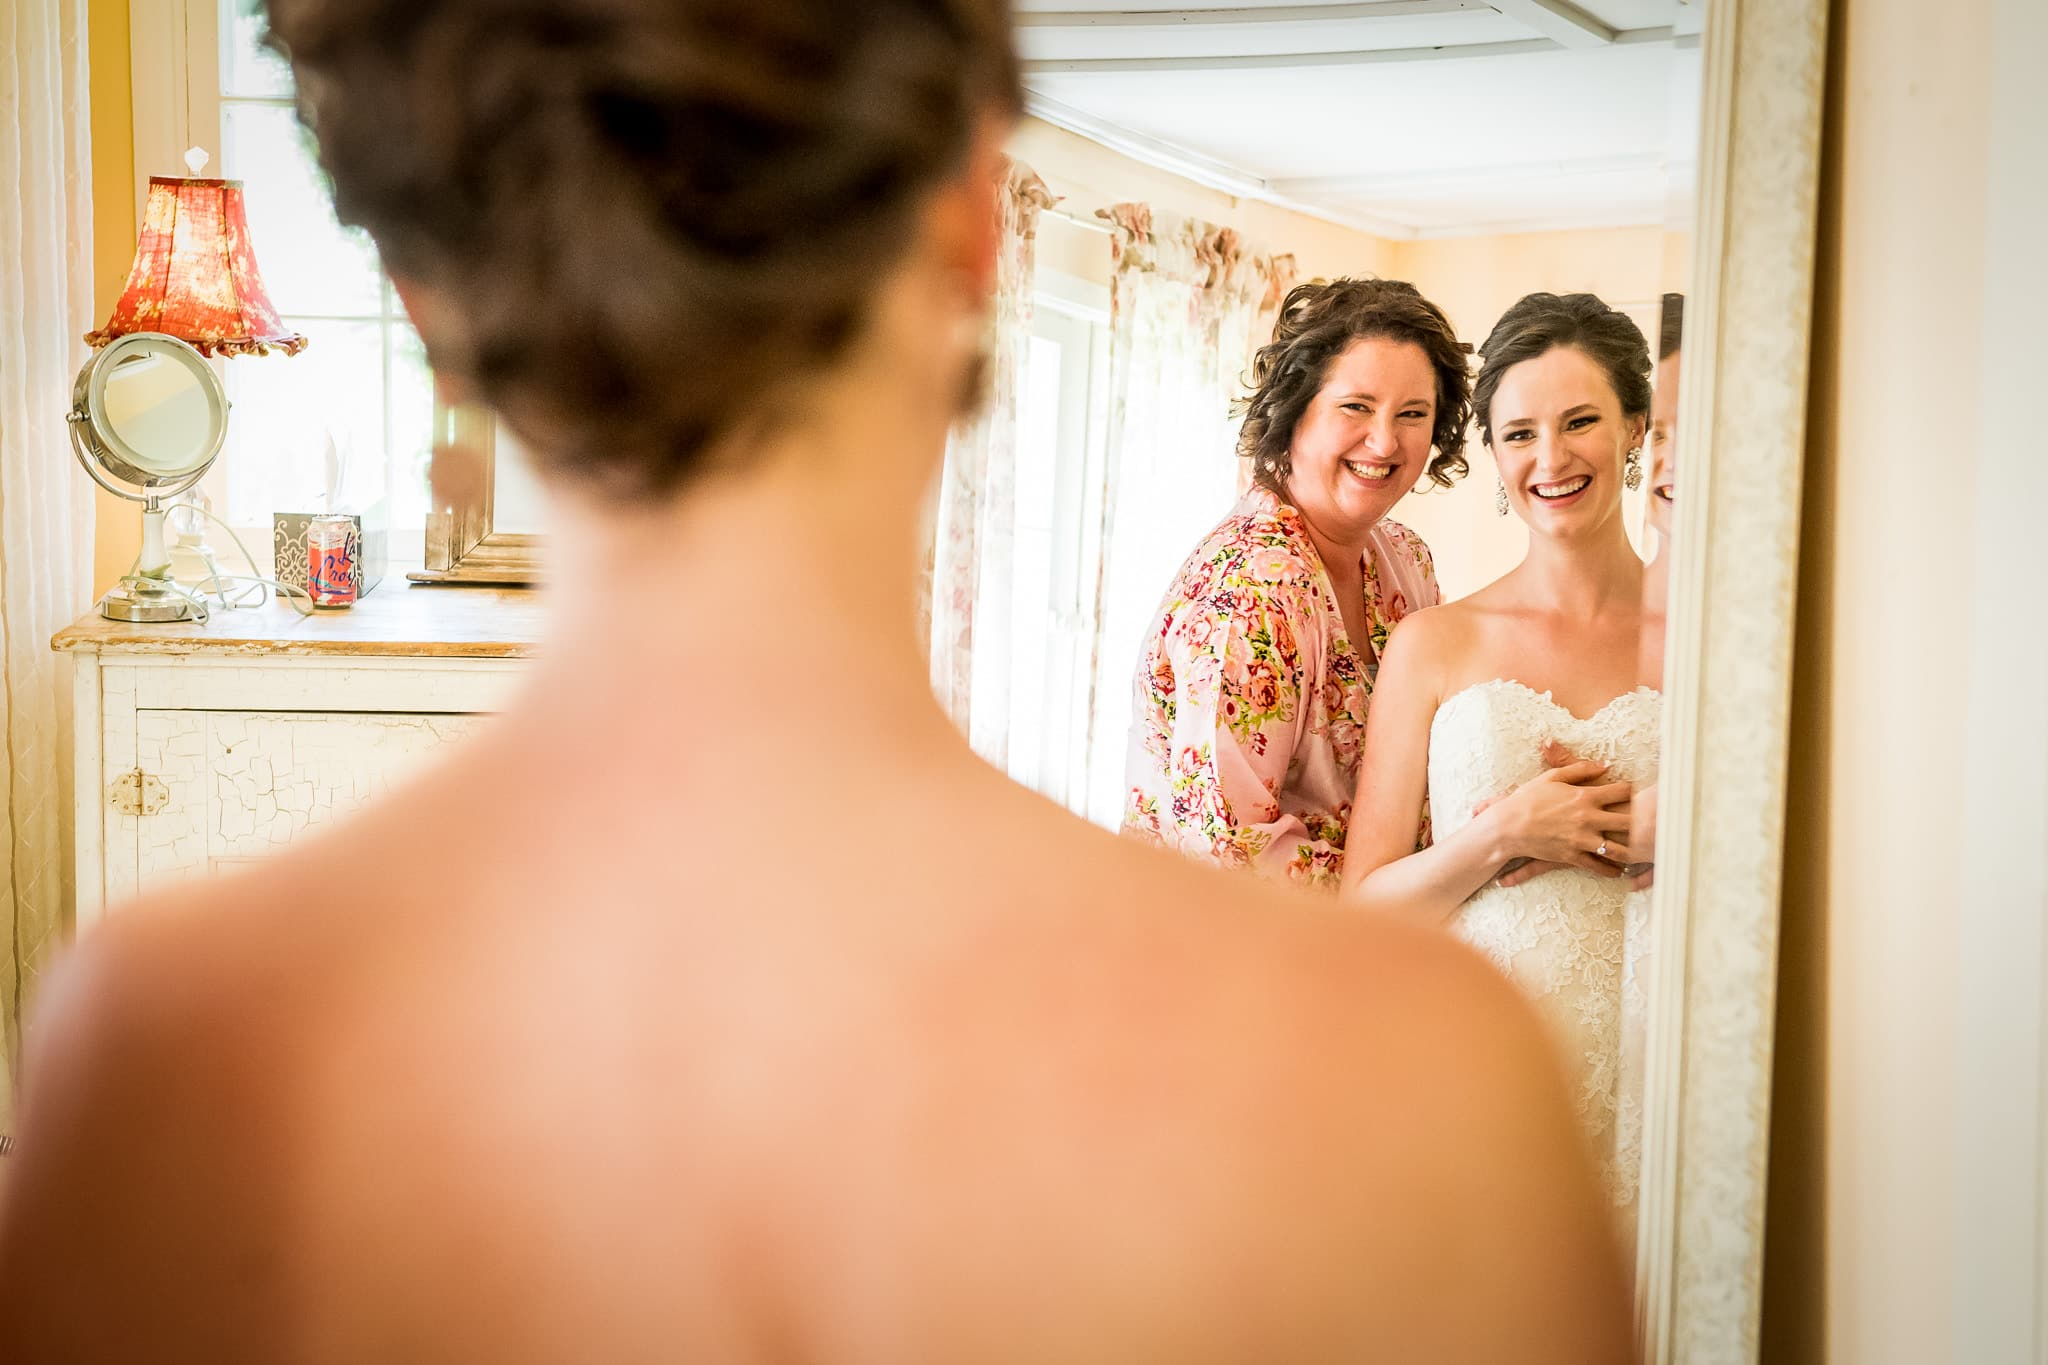 Mirror reflection image of bride and sister sharing a beautiful moment at Camrose Hill